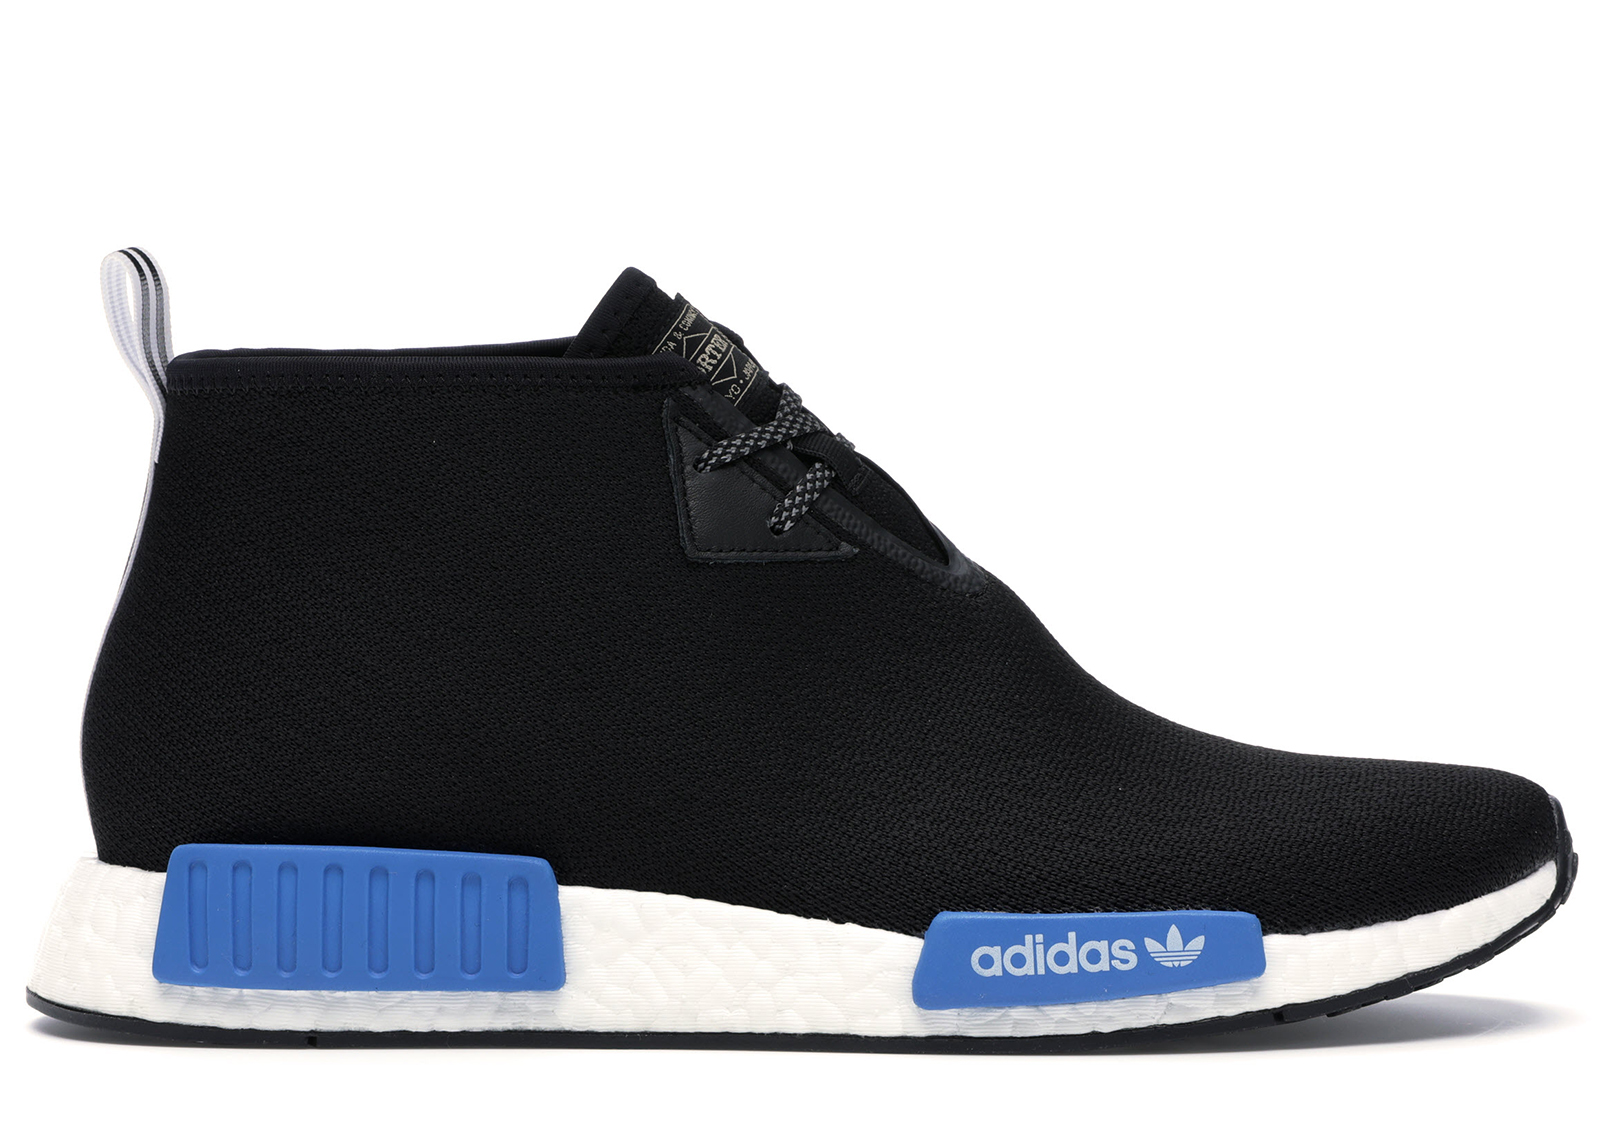 Acheter adidas NMD C1 Chaussures et sneakers invendues